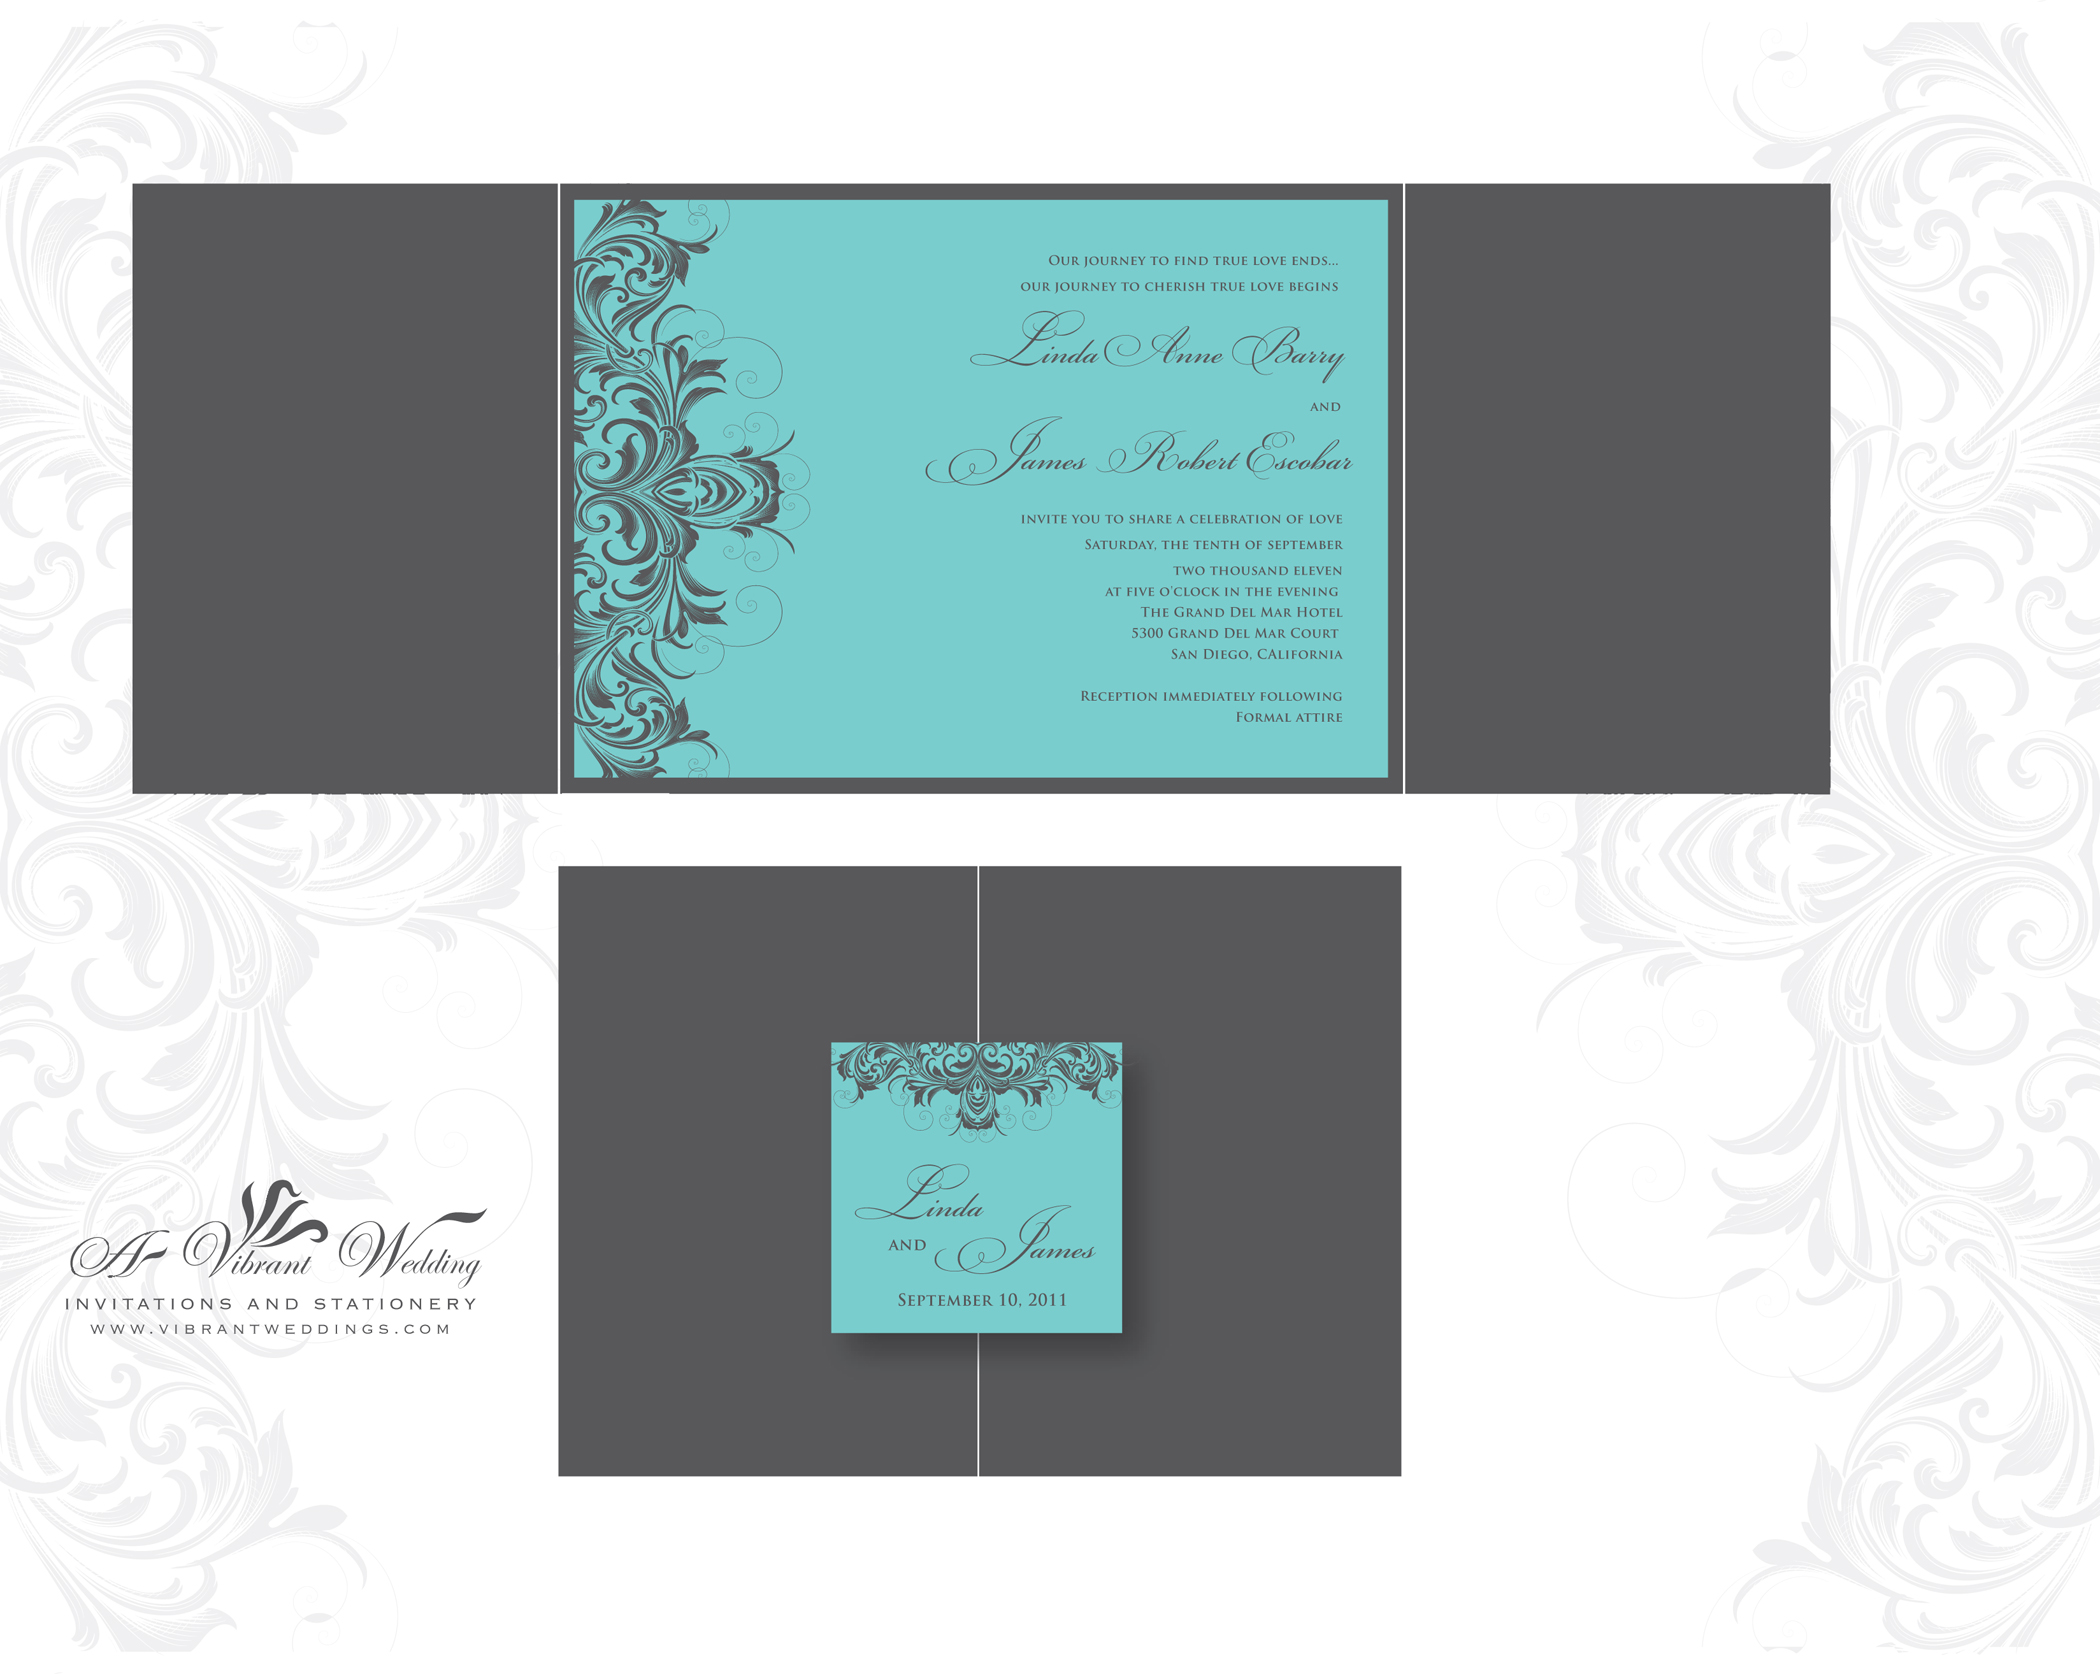 Turquoise and Grey Wedding Invitation Victorian Scroll Design A